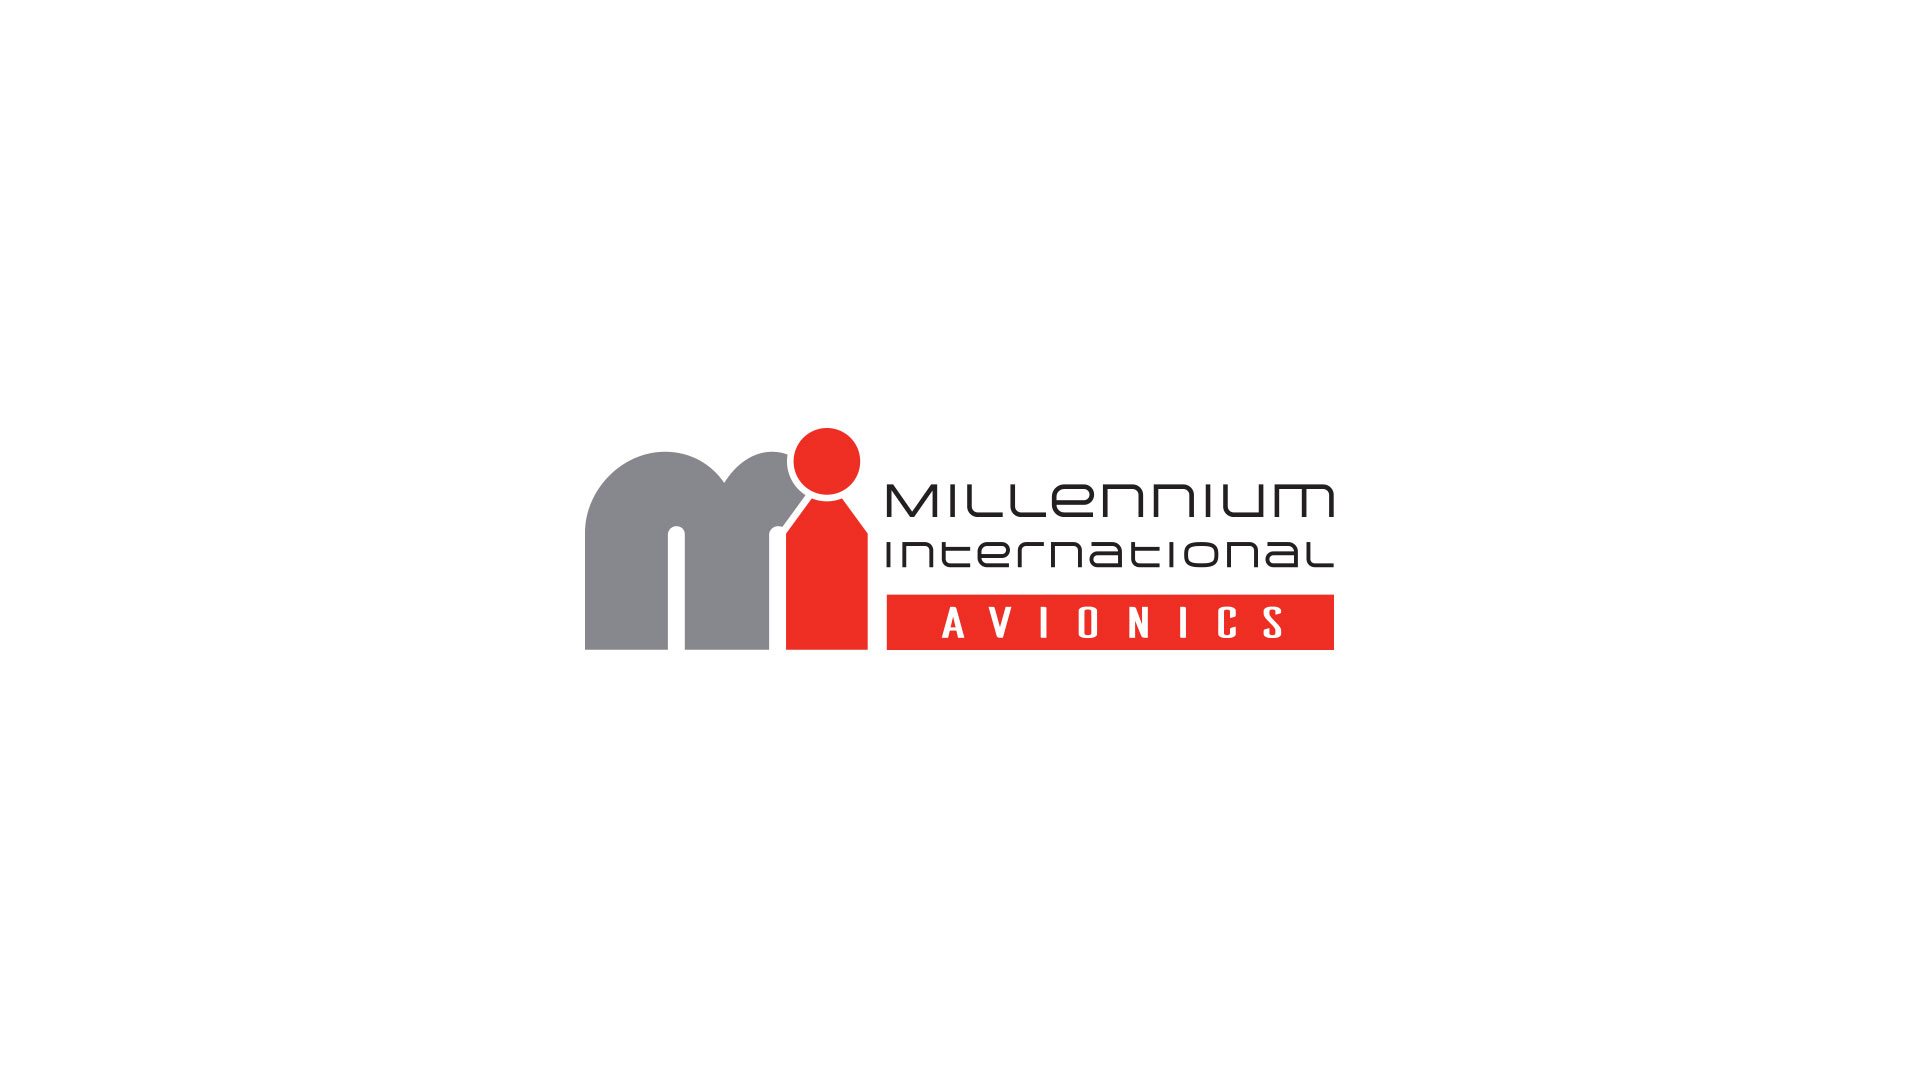 Millenium International